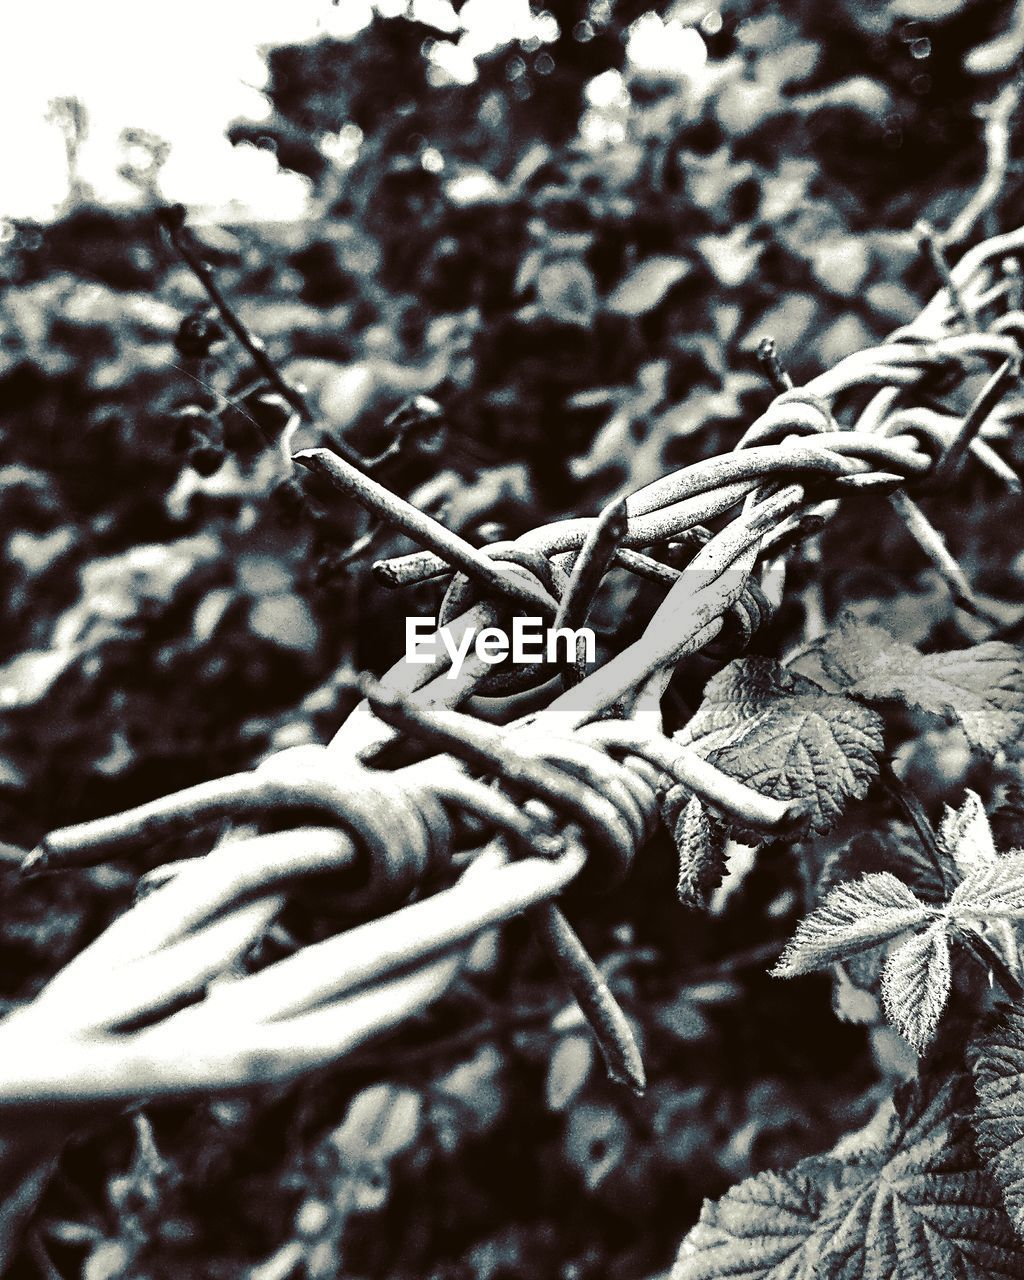 no people, rope, close-up, day, selective focus, plant, tree, strength, nature, connection, tied up, focus on foreground, outdoors, metal, tangled, twisted, sunlight, growth, full frame, complexity